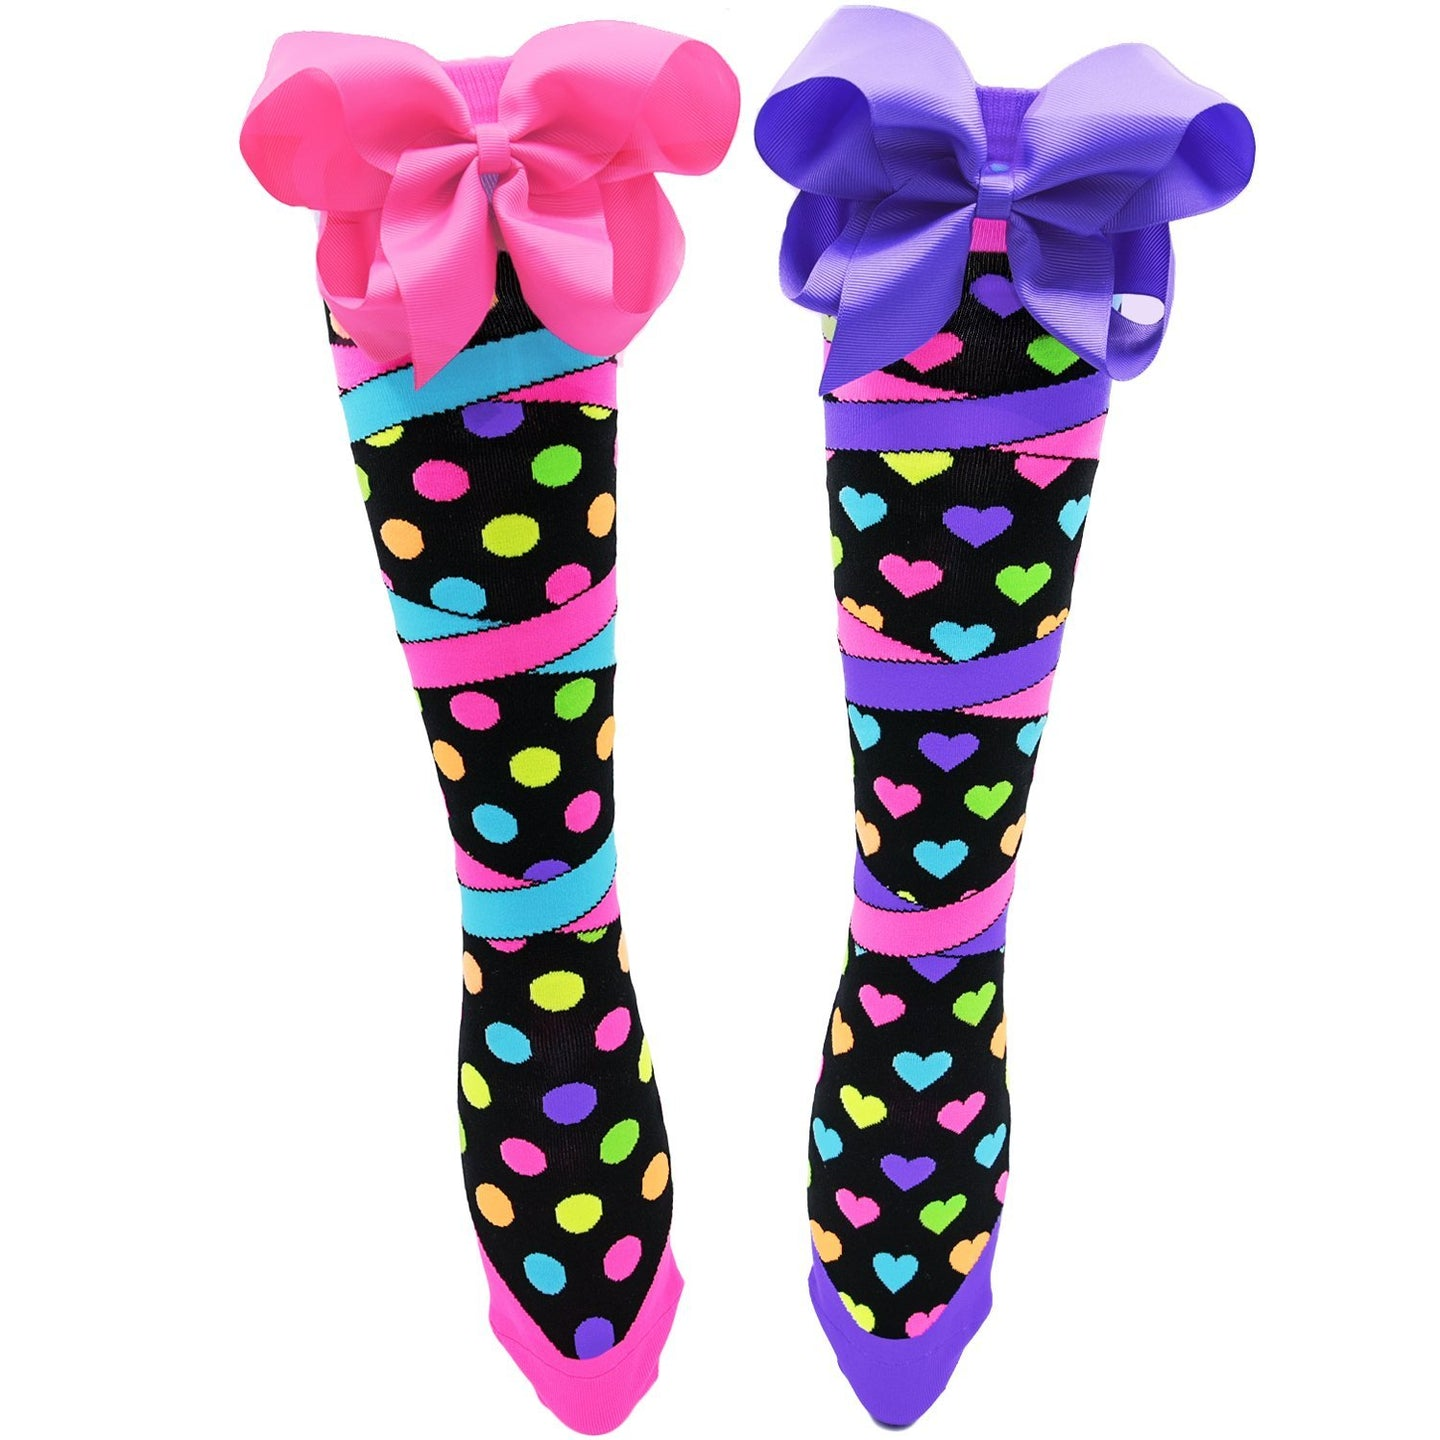 BOW-TIFUL MadMia Socks